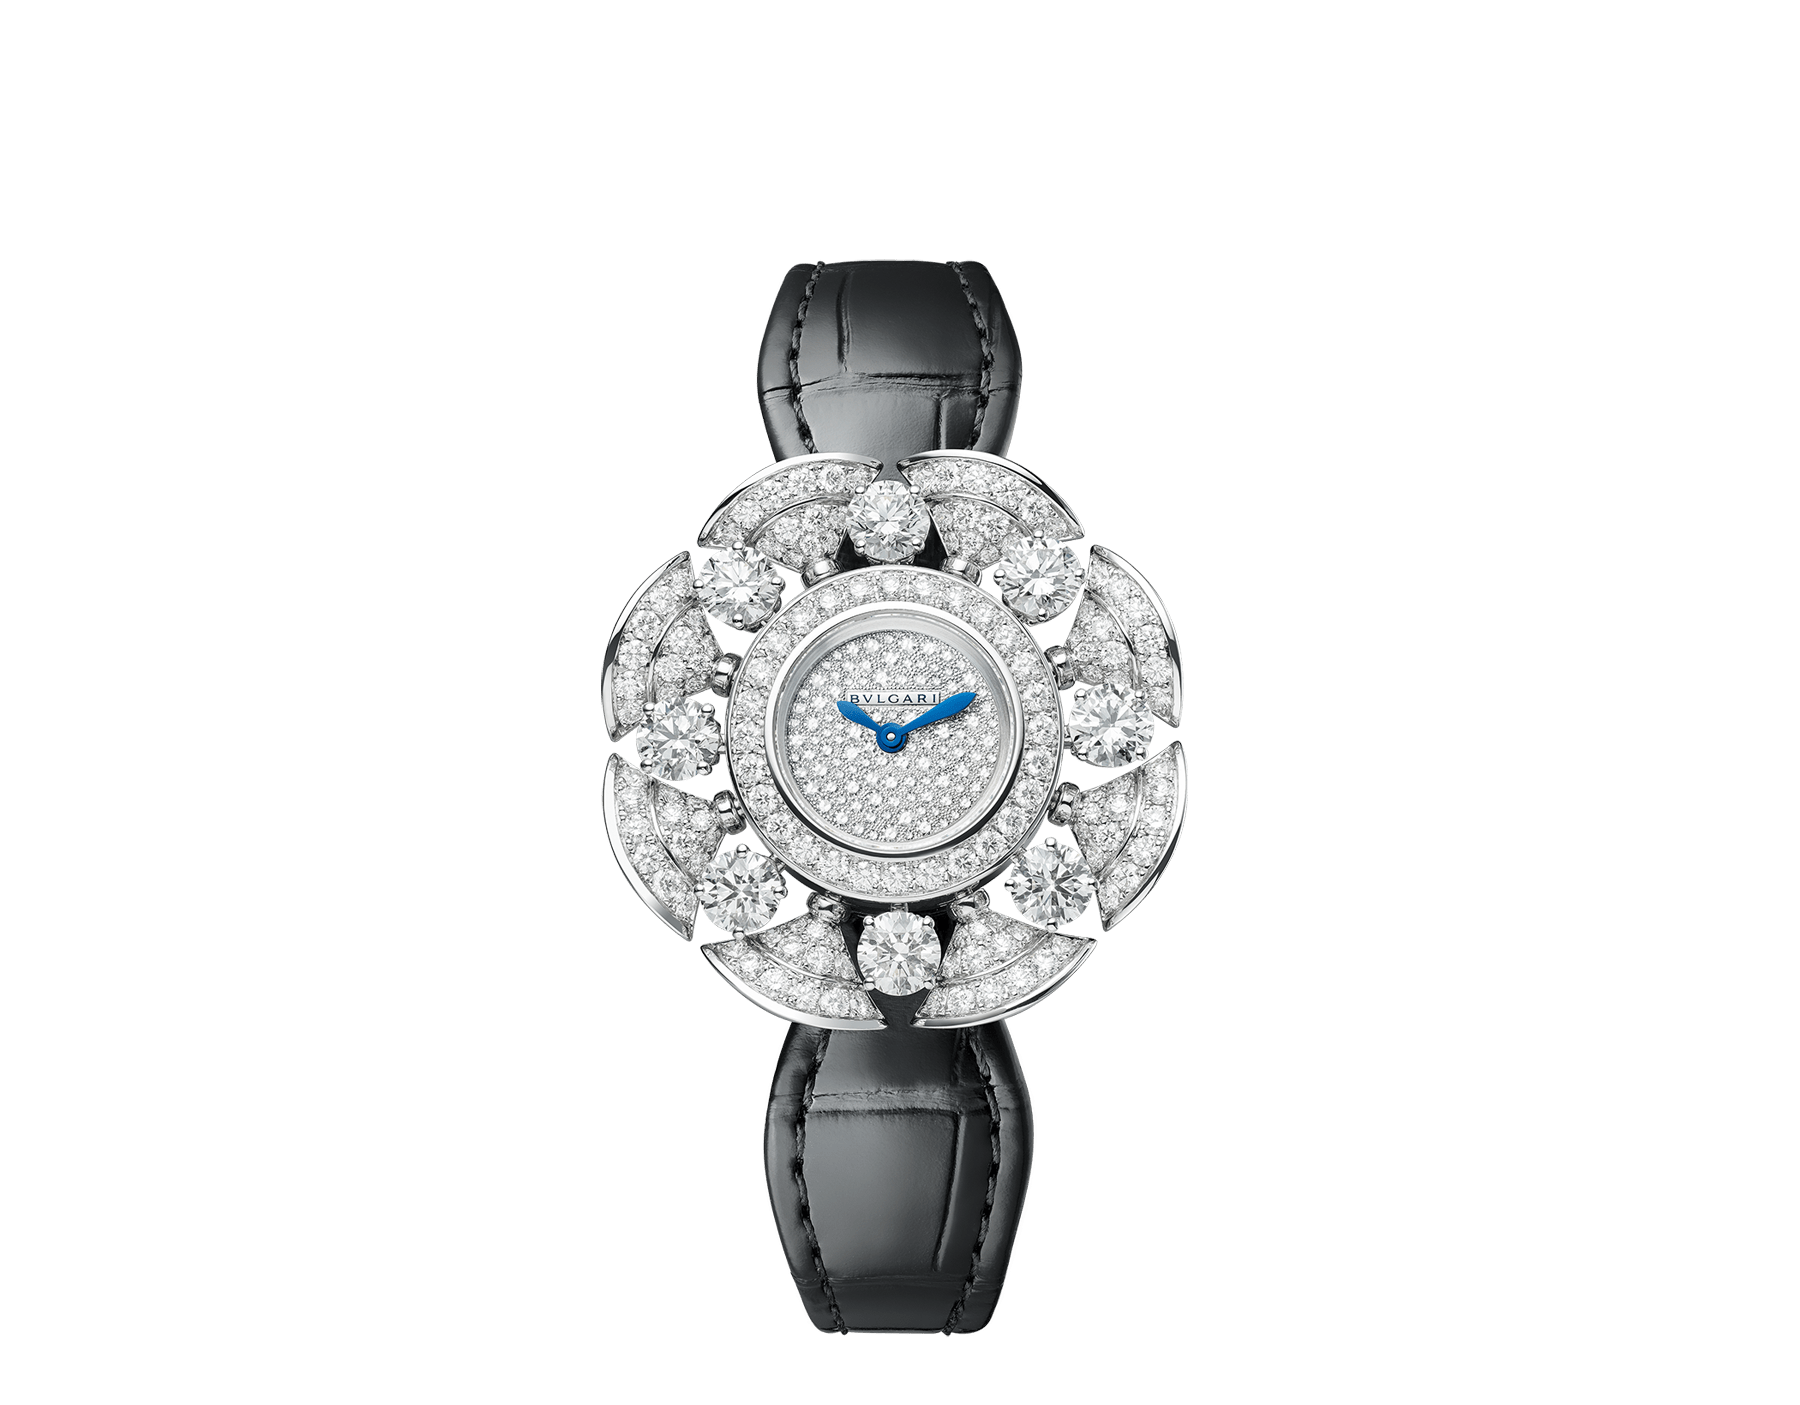 DIVAS' DREAM Divissima High Jewellery watch with 18 kt white gold case and mobile petals set with 8 large round brilliant-cut diamonds and other round brilliant-cut diamonds, pavé diamond dial and black alligator bracelet. Water-resistant up to 30 metres 103474 image 1